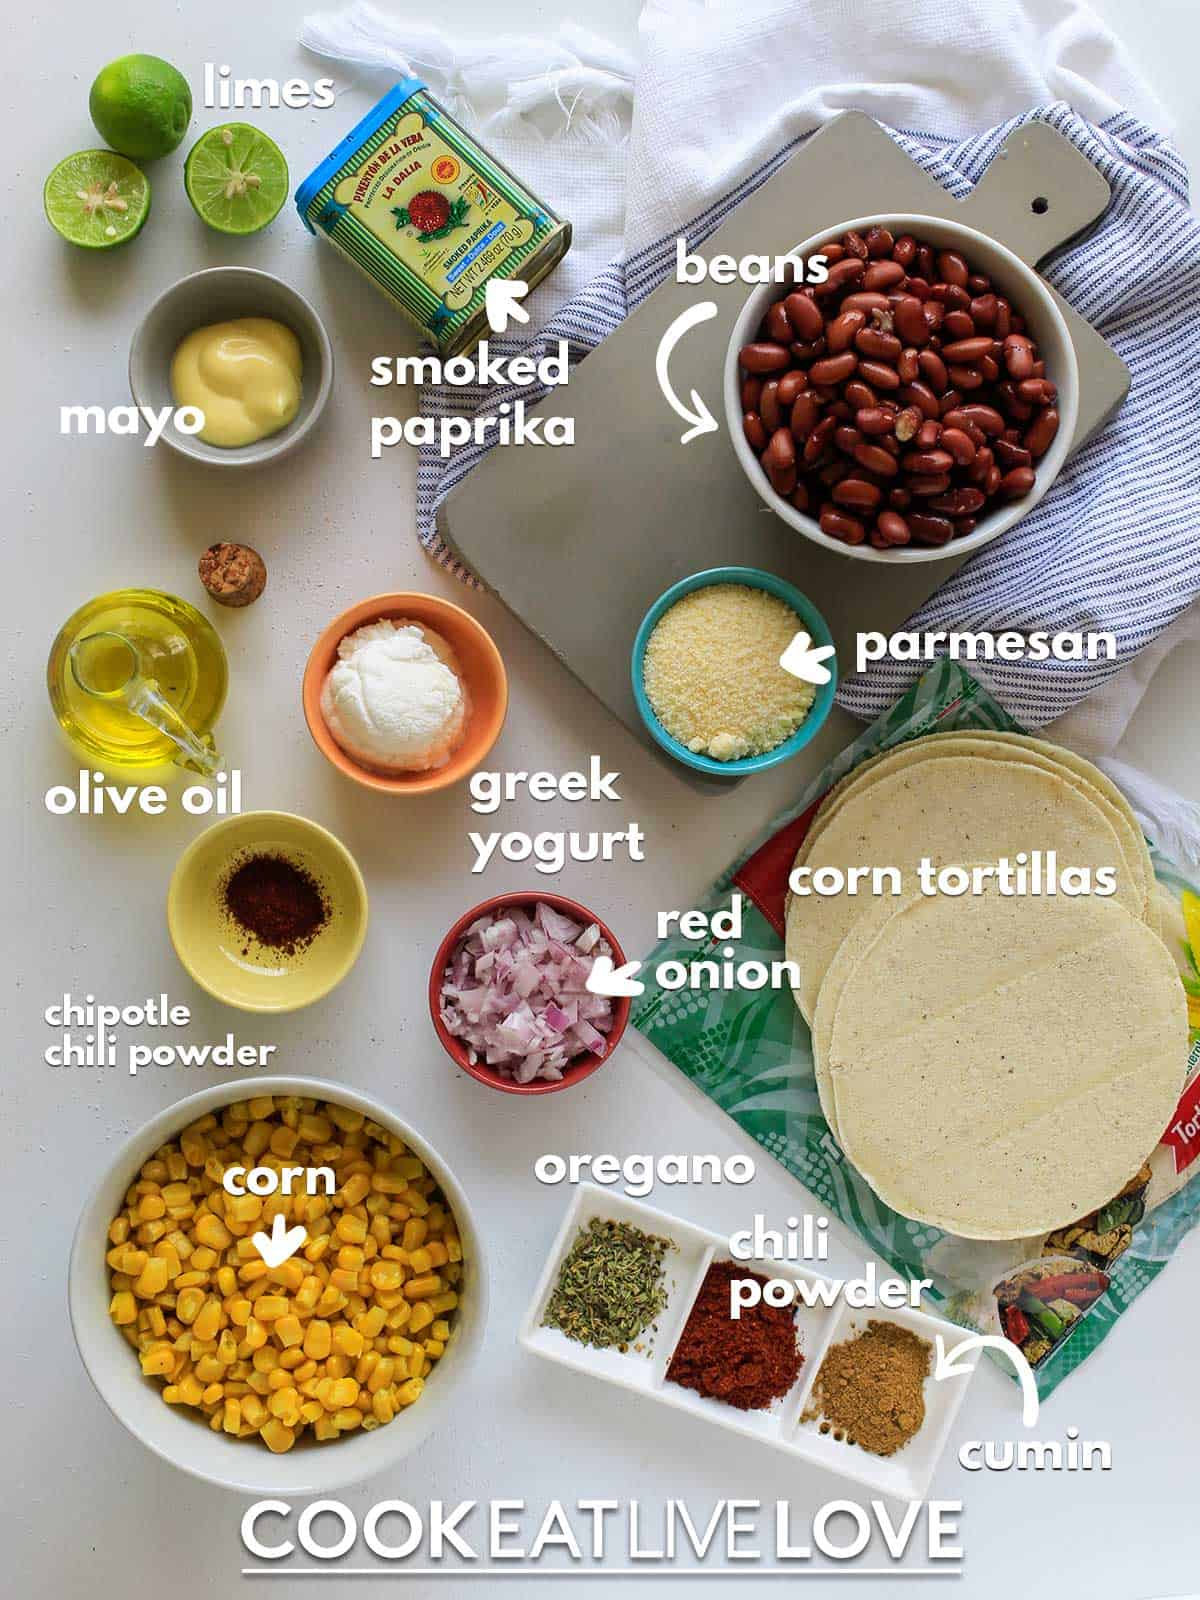 Ingredients to make tostadas on table with text labels.